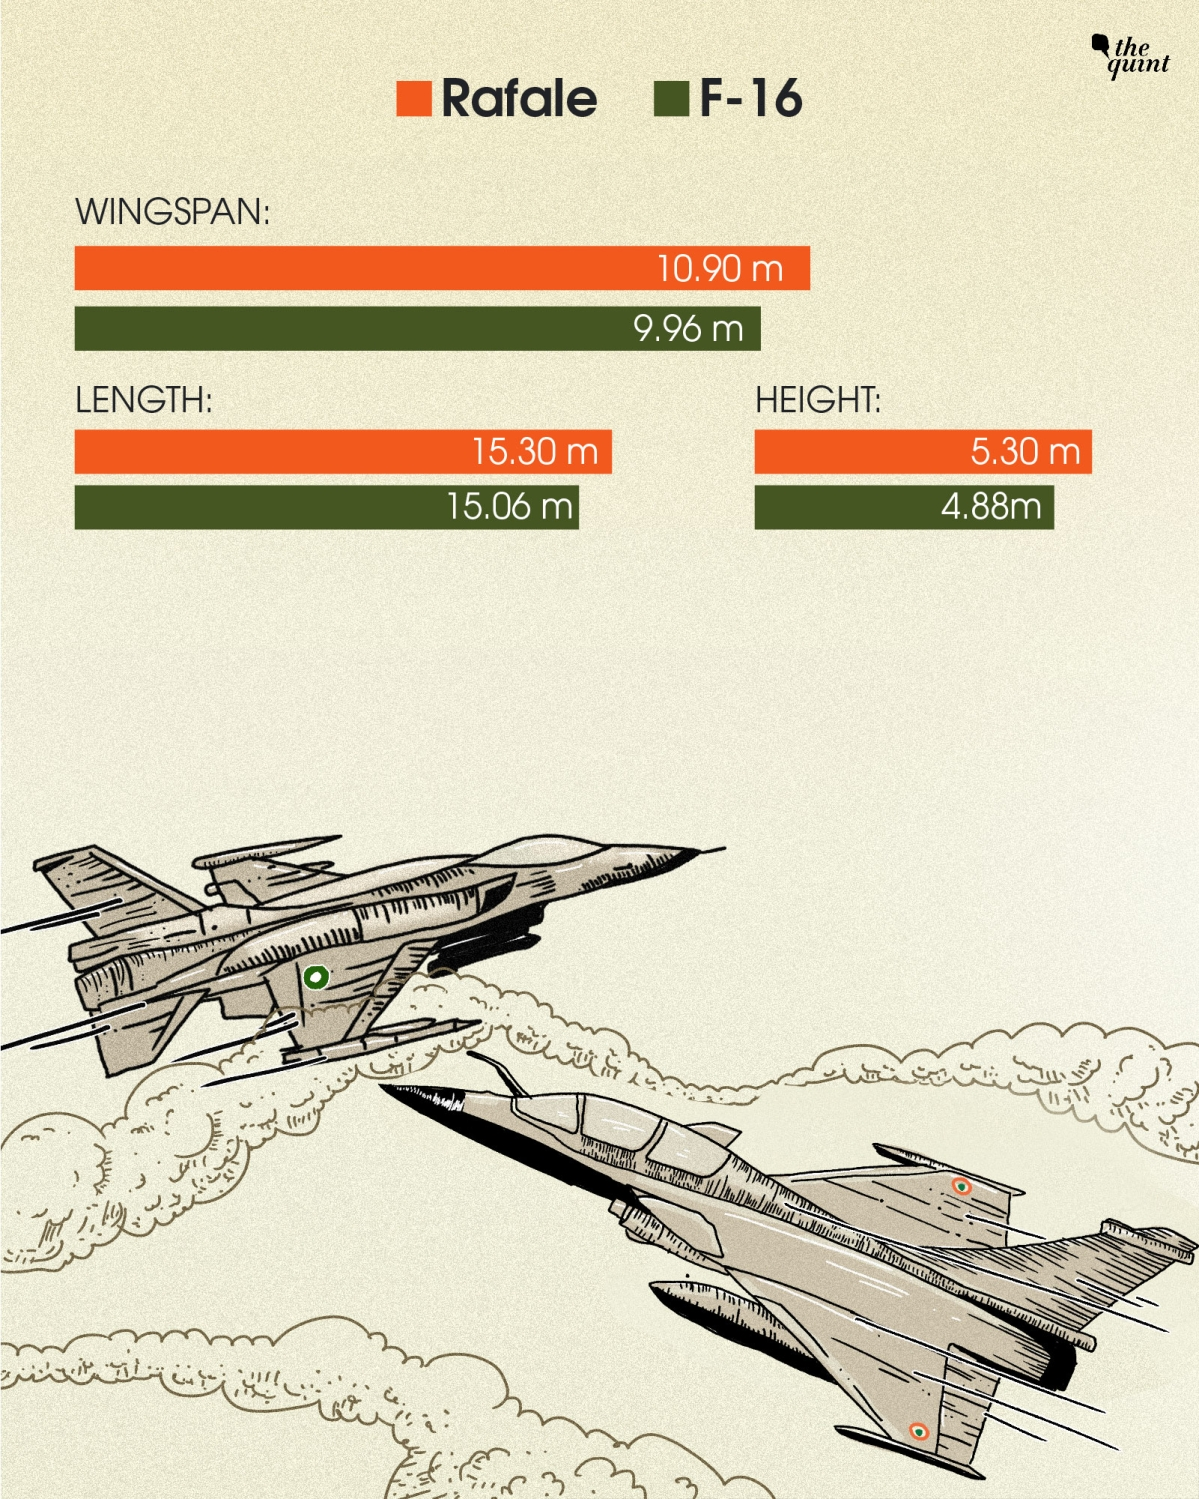 Rafale vs F16 Fighter Jet Comparison: Features and Specifications of